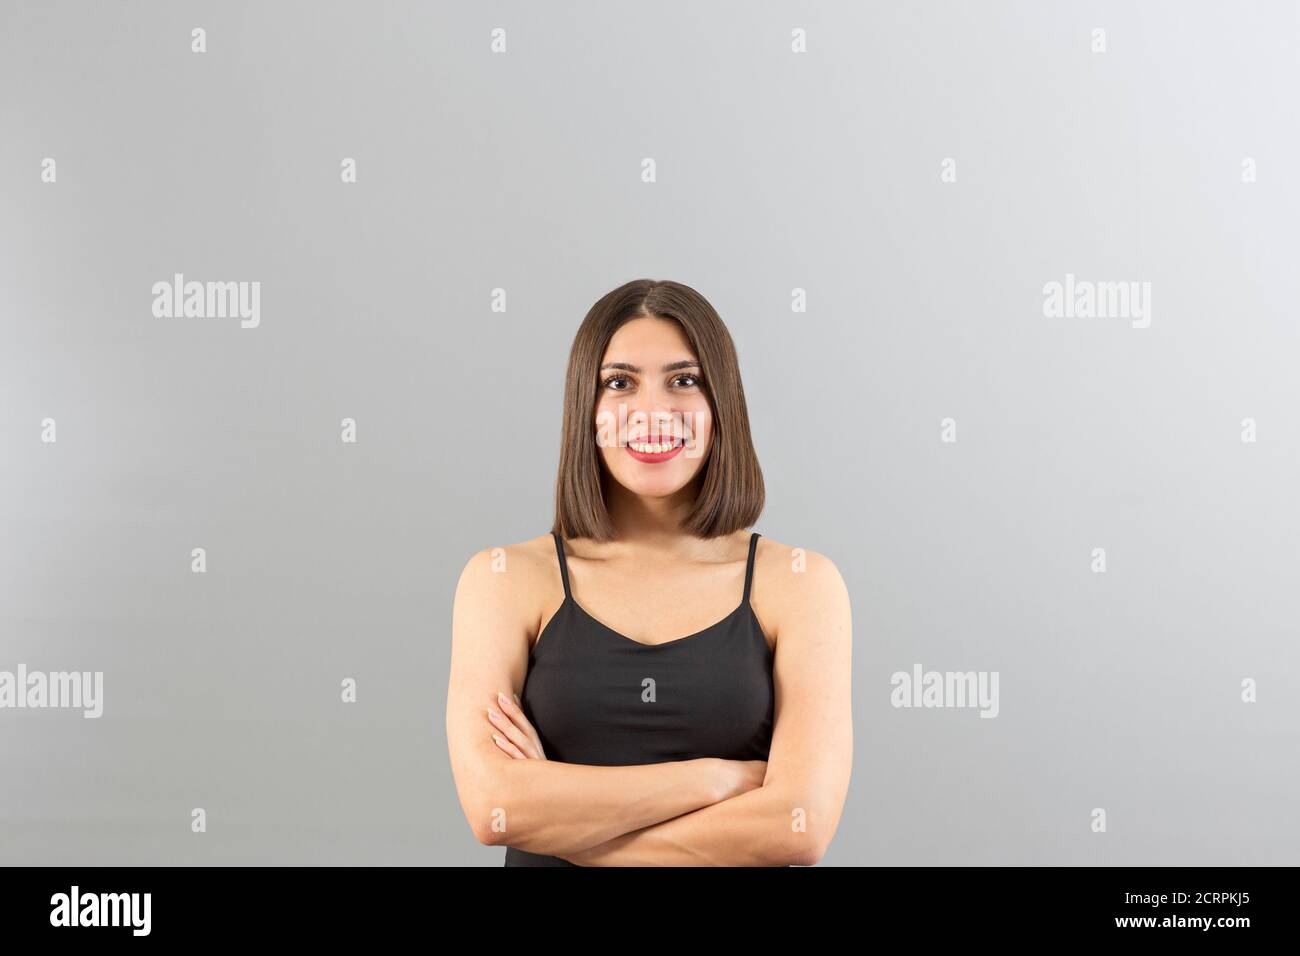 Young beautiful Turkish woman view in confident mood, isolated studio shot with copy space Stock Photo